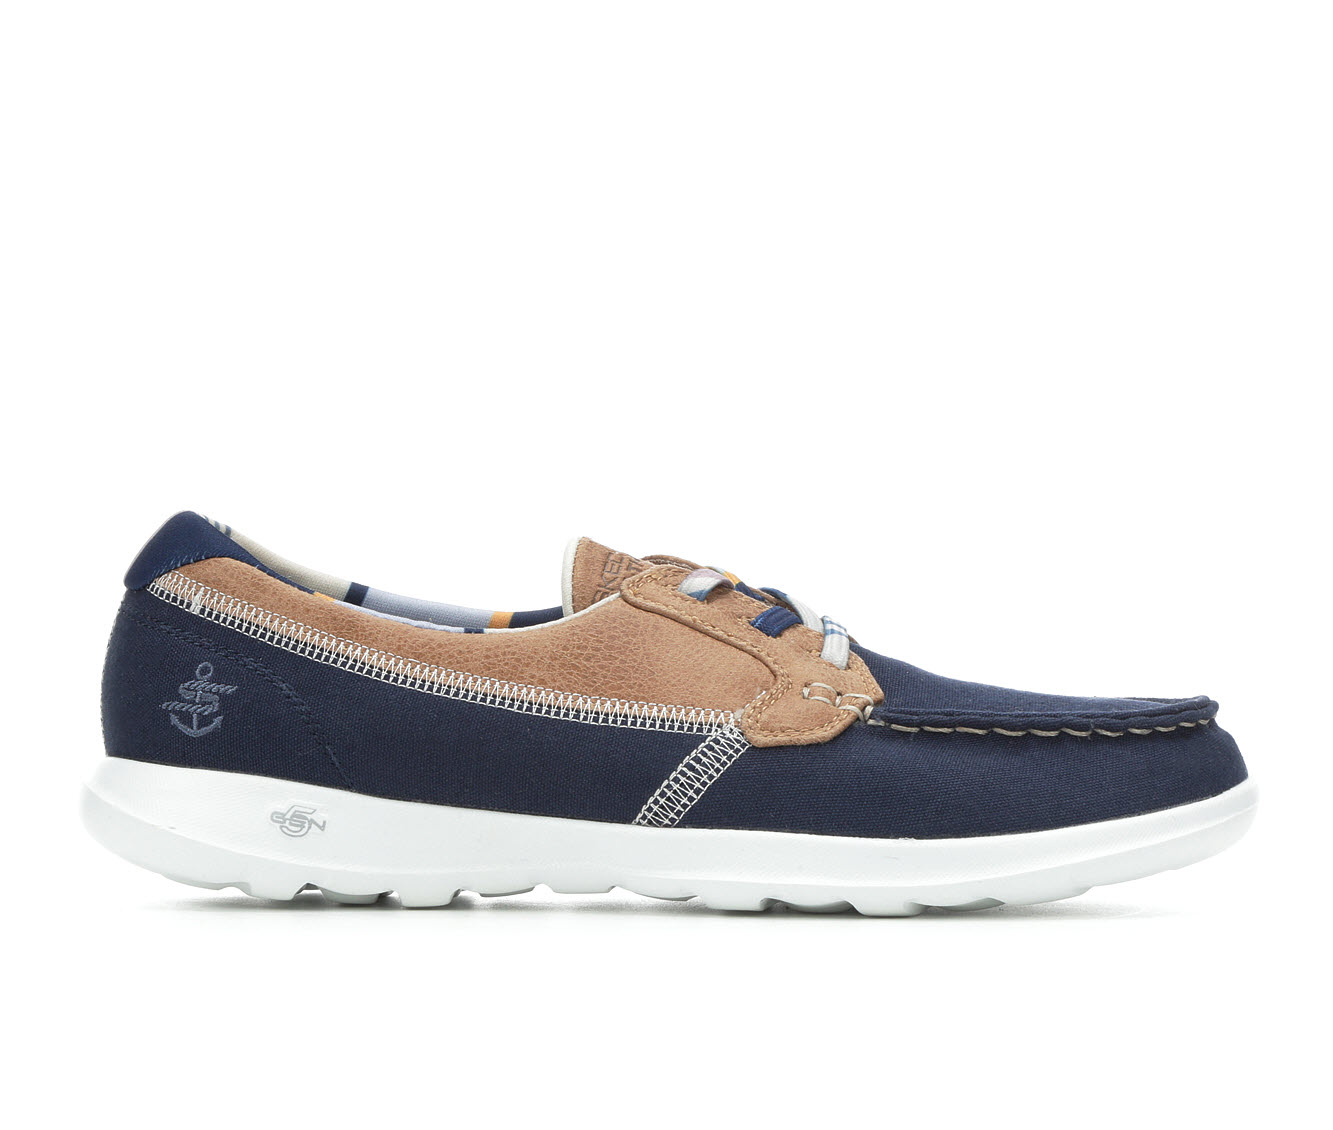 Skechers Go Play Vista 136070 Boat Shoes